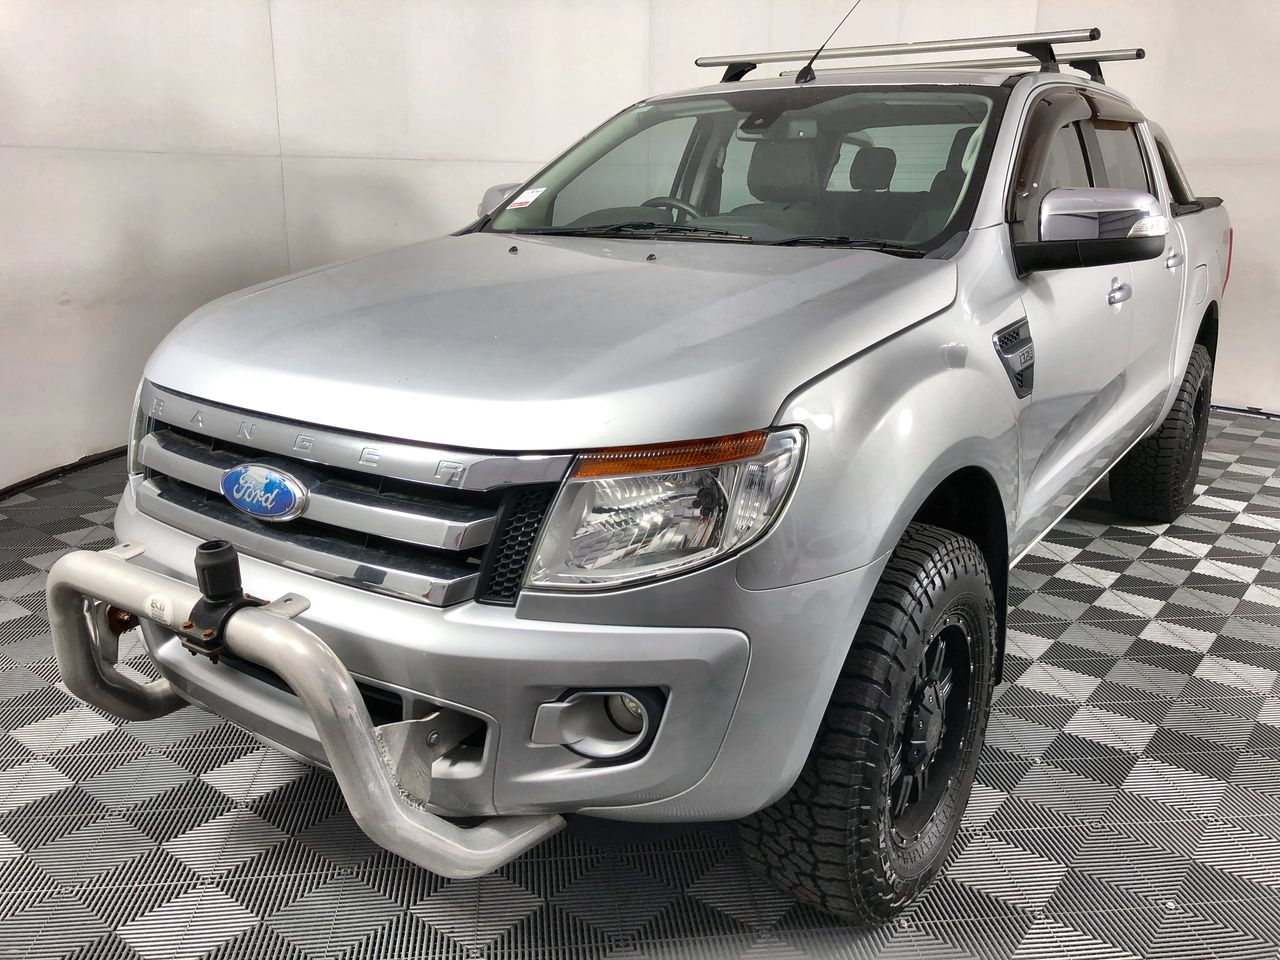 2012 Ford Ranger XLT 3.2 4WD Turbo Diesel Automatic Dual Cab